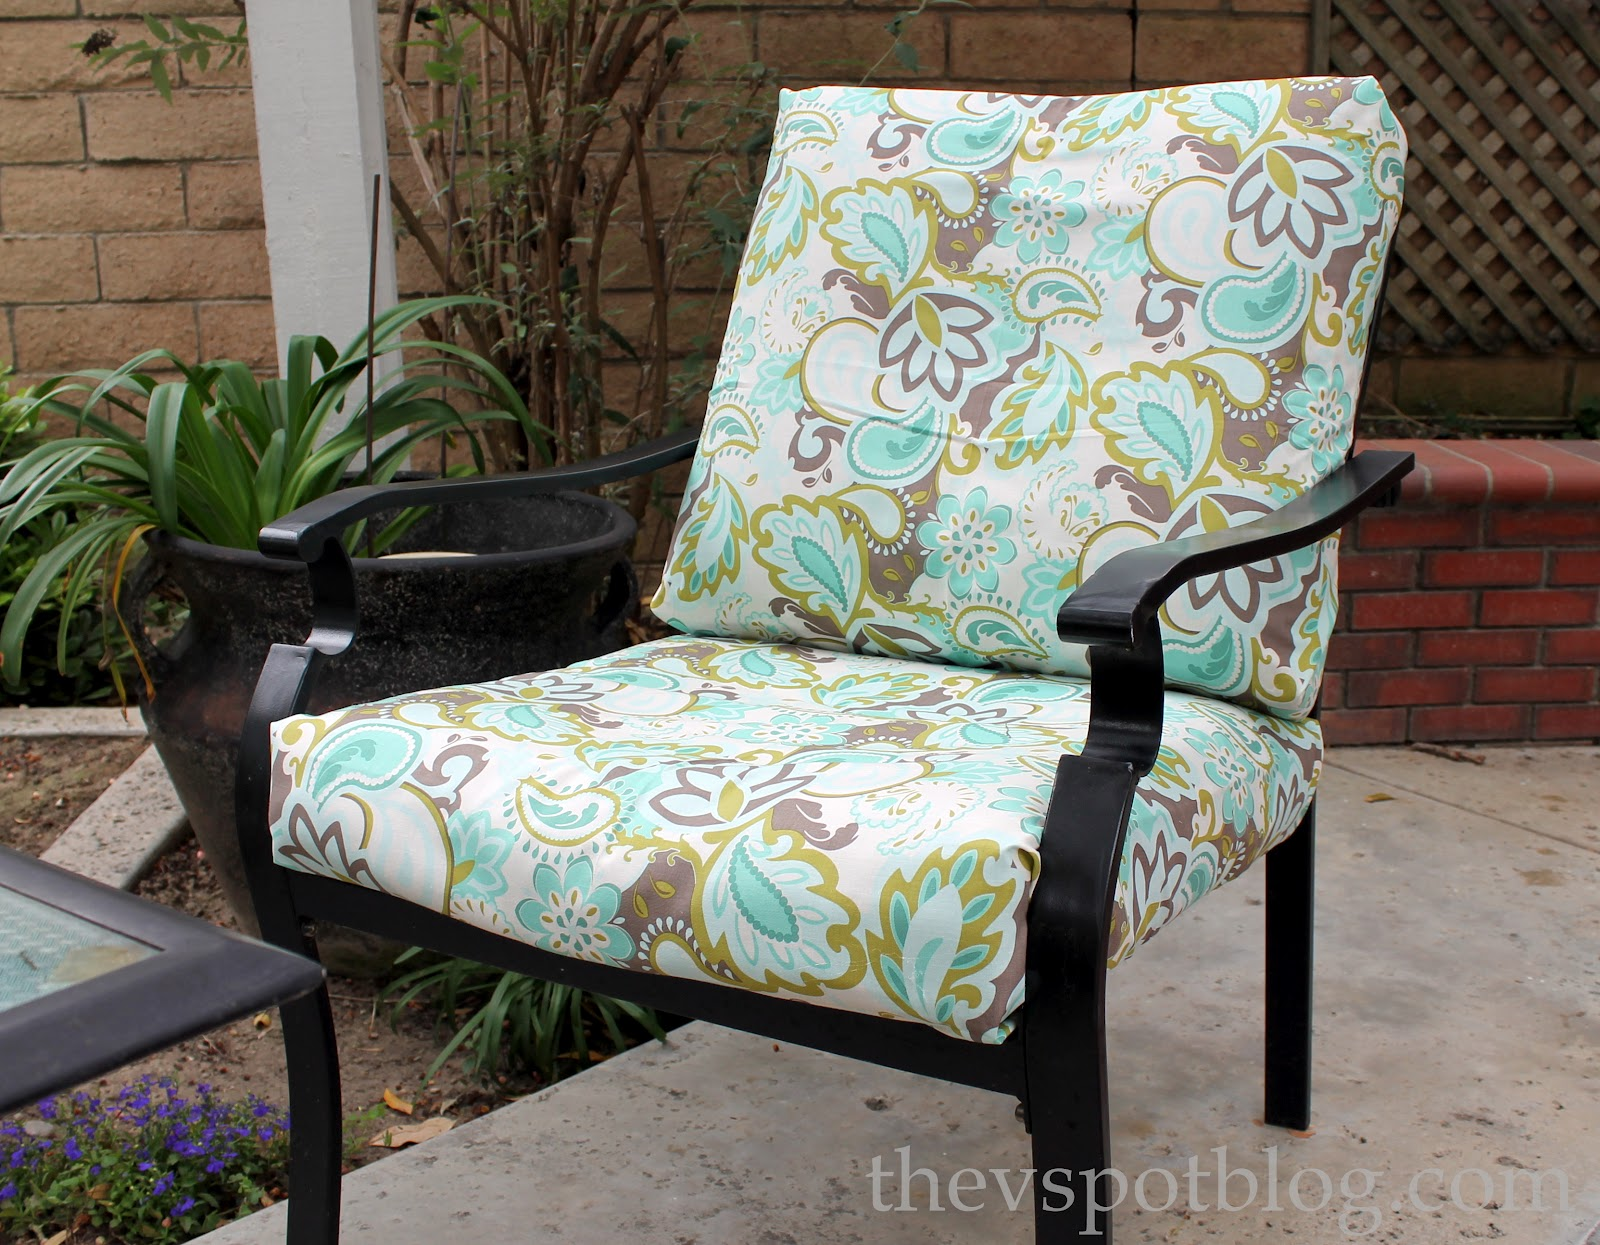 diy outdoor chair cushion covers red chairs sarajevo woodwork patio furniture cushions pdf plans